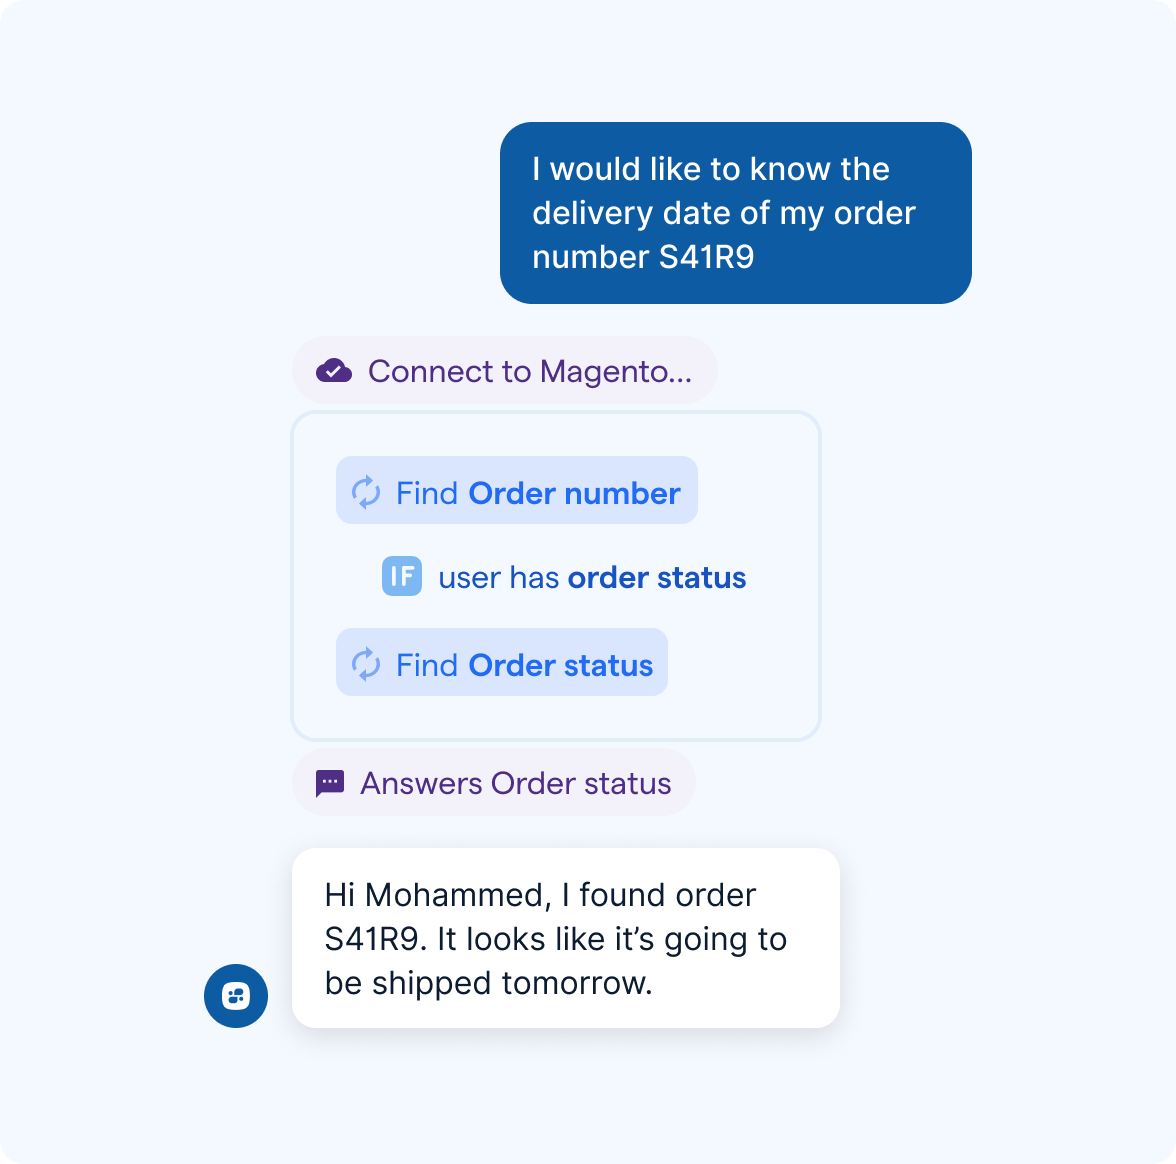 Bot Connecting to Systems to Provide a Response